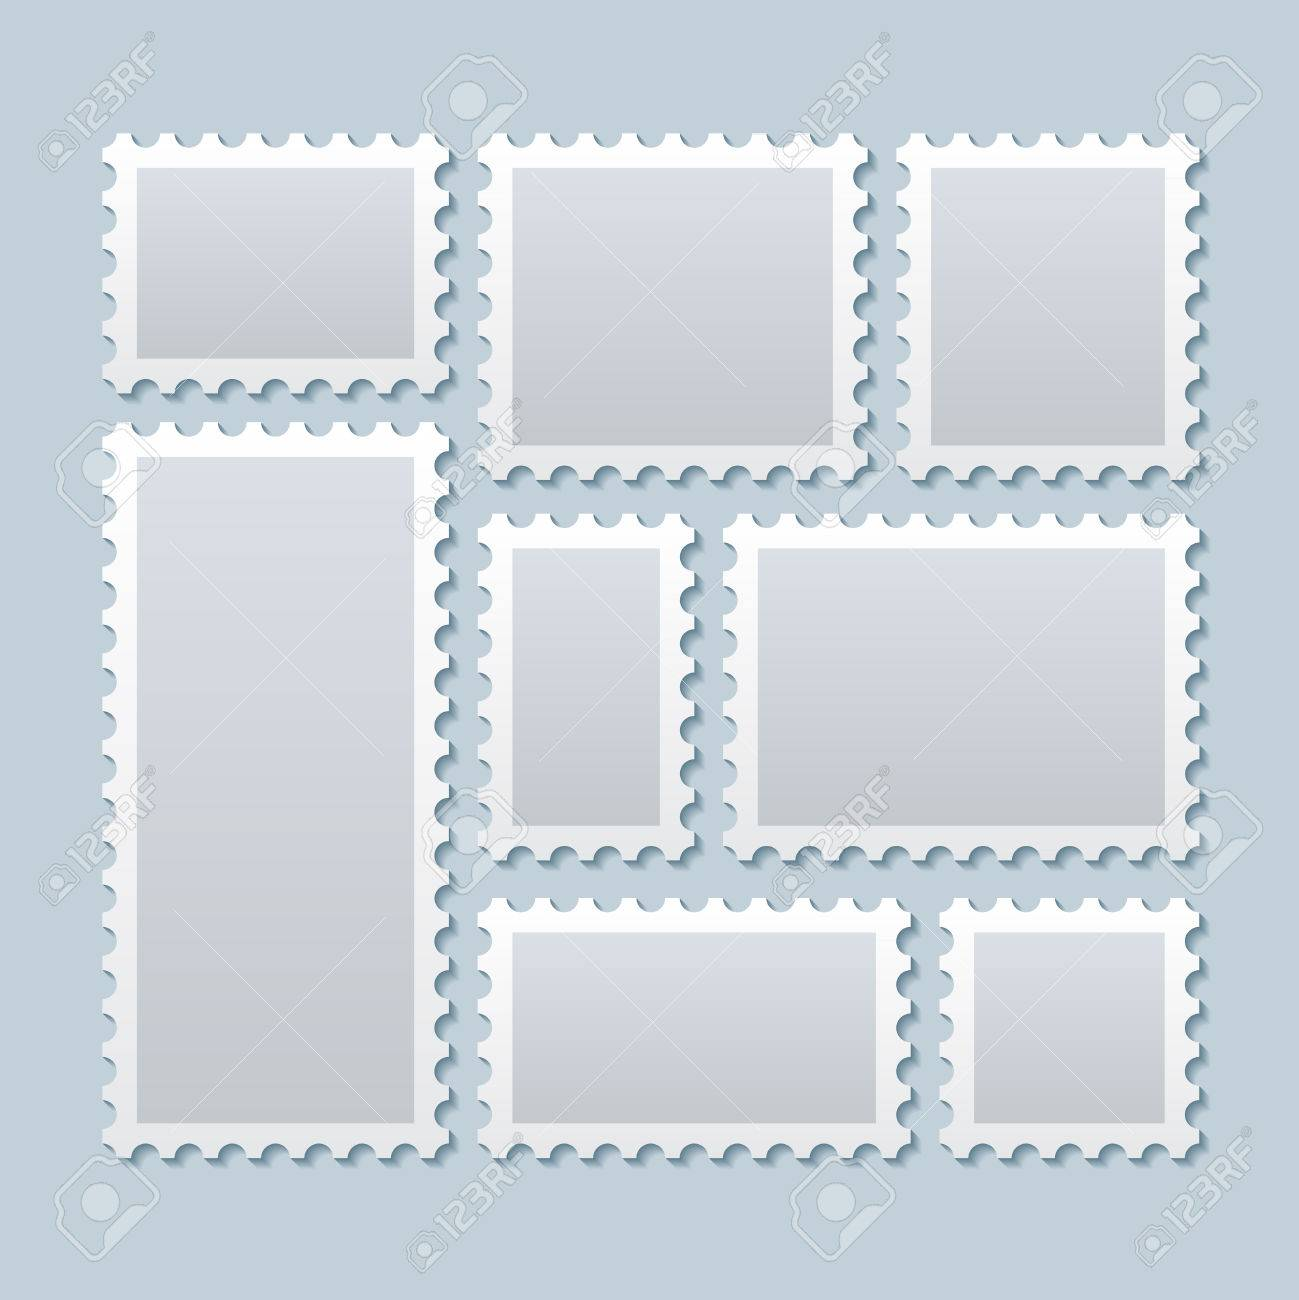 Blank postage stamps in different size. Stamp mark postage, paper mark stamp, blank mark postcard. Vector illustration template - 56432442